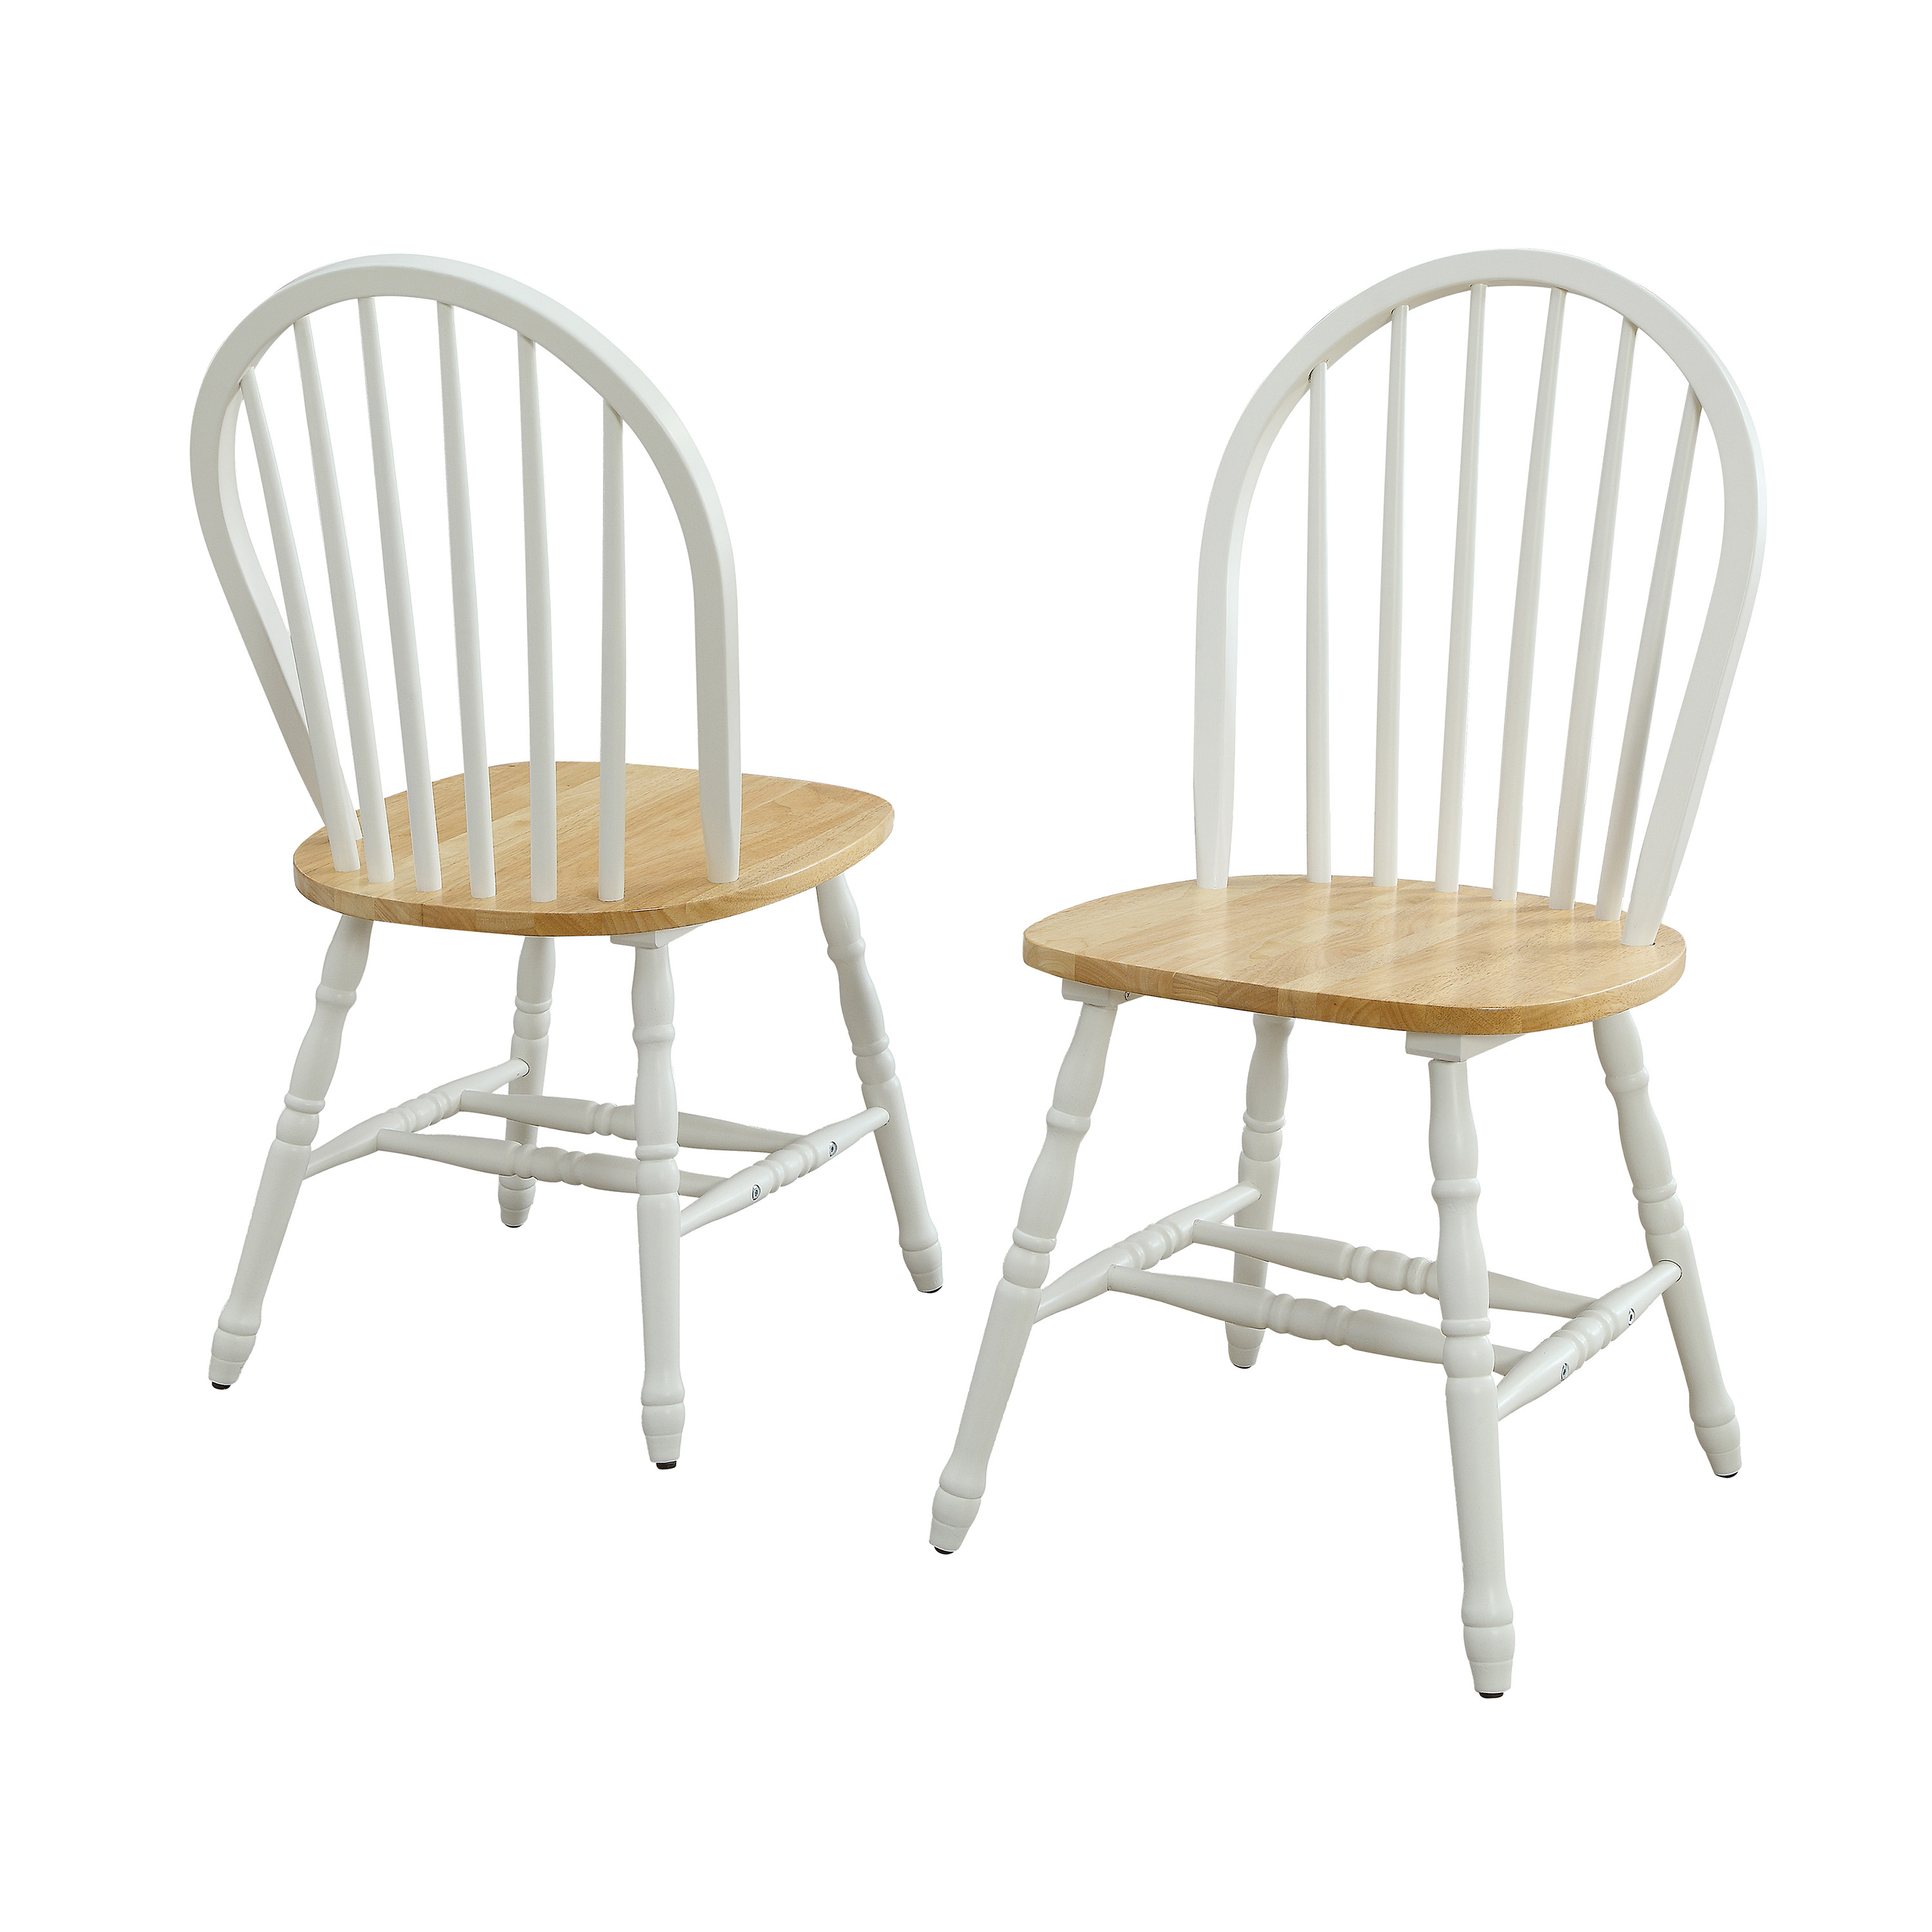 wooden chairs pictures high heel better homes and gardens autumn lane windsor solid wood dining set of 2